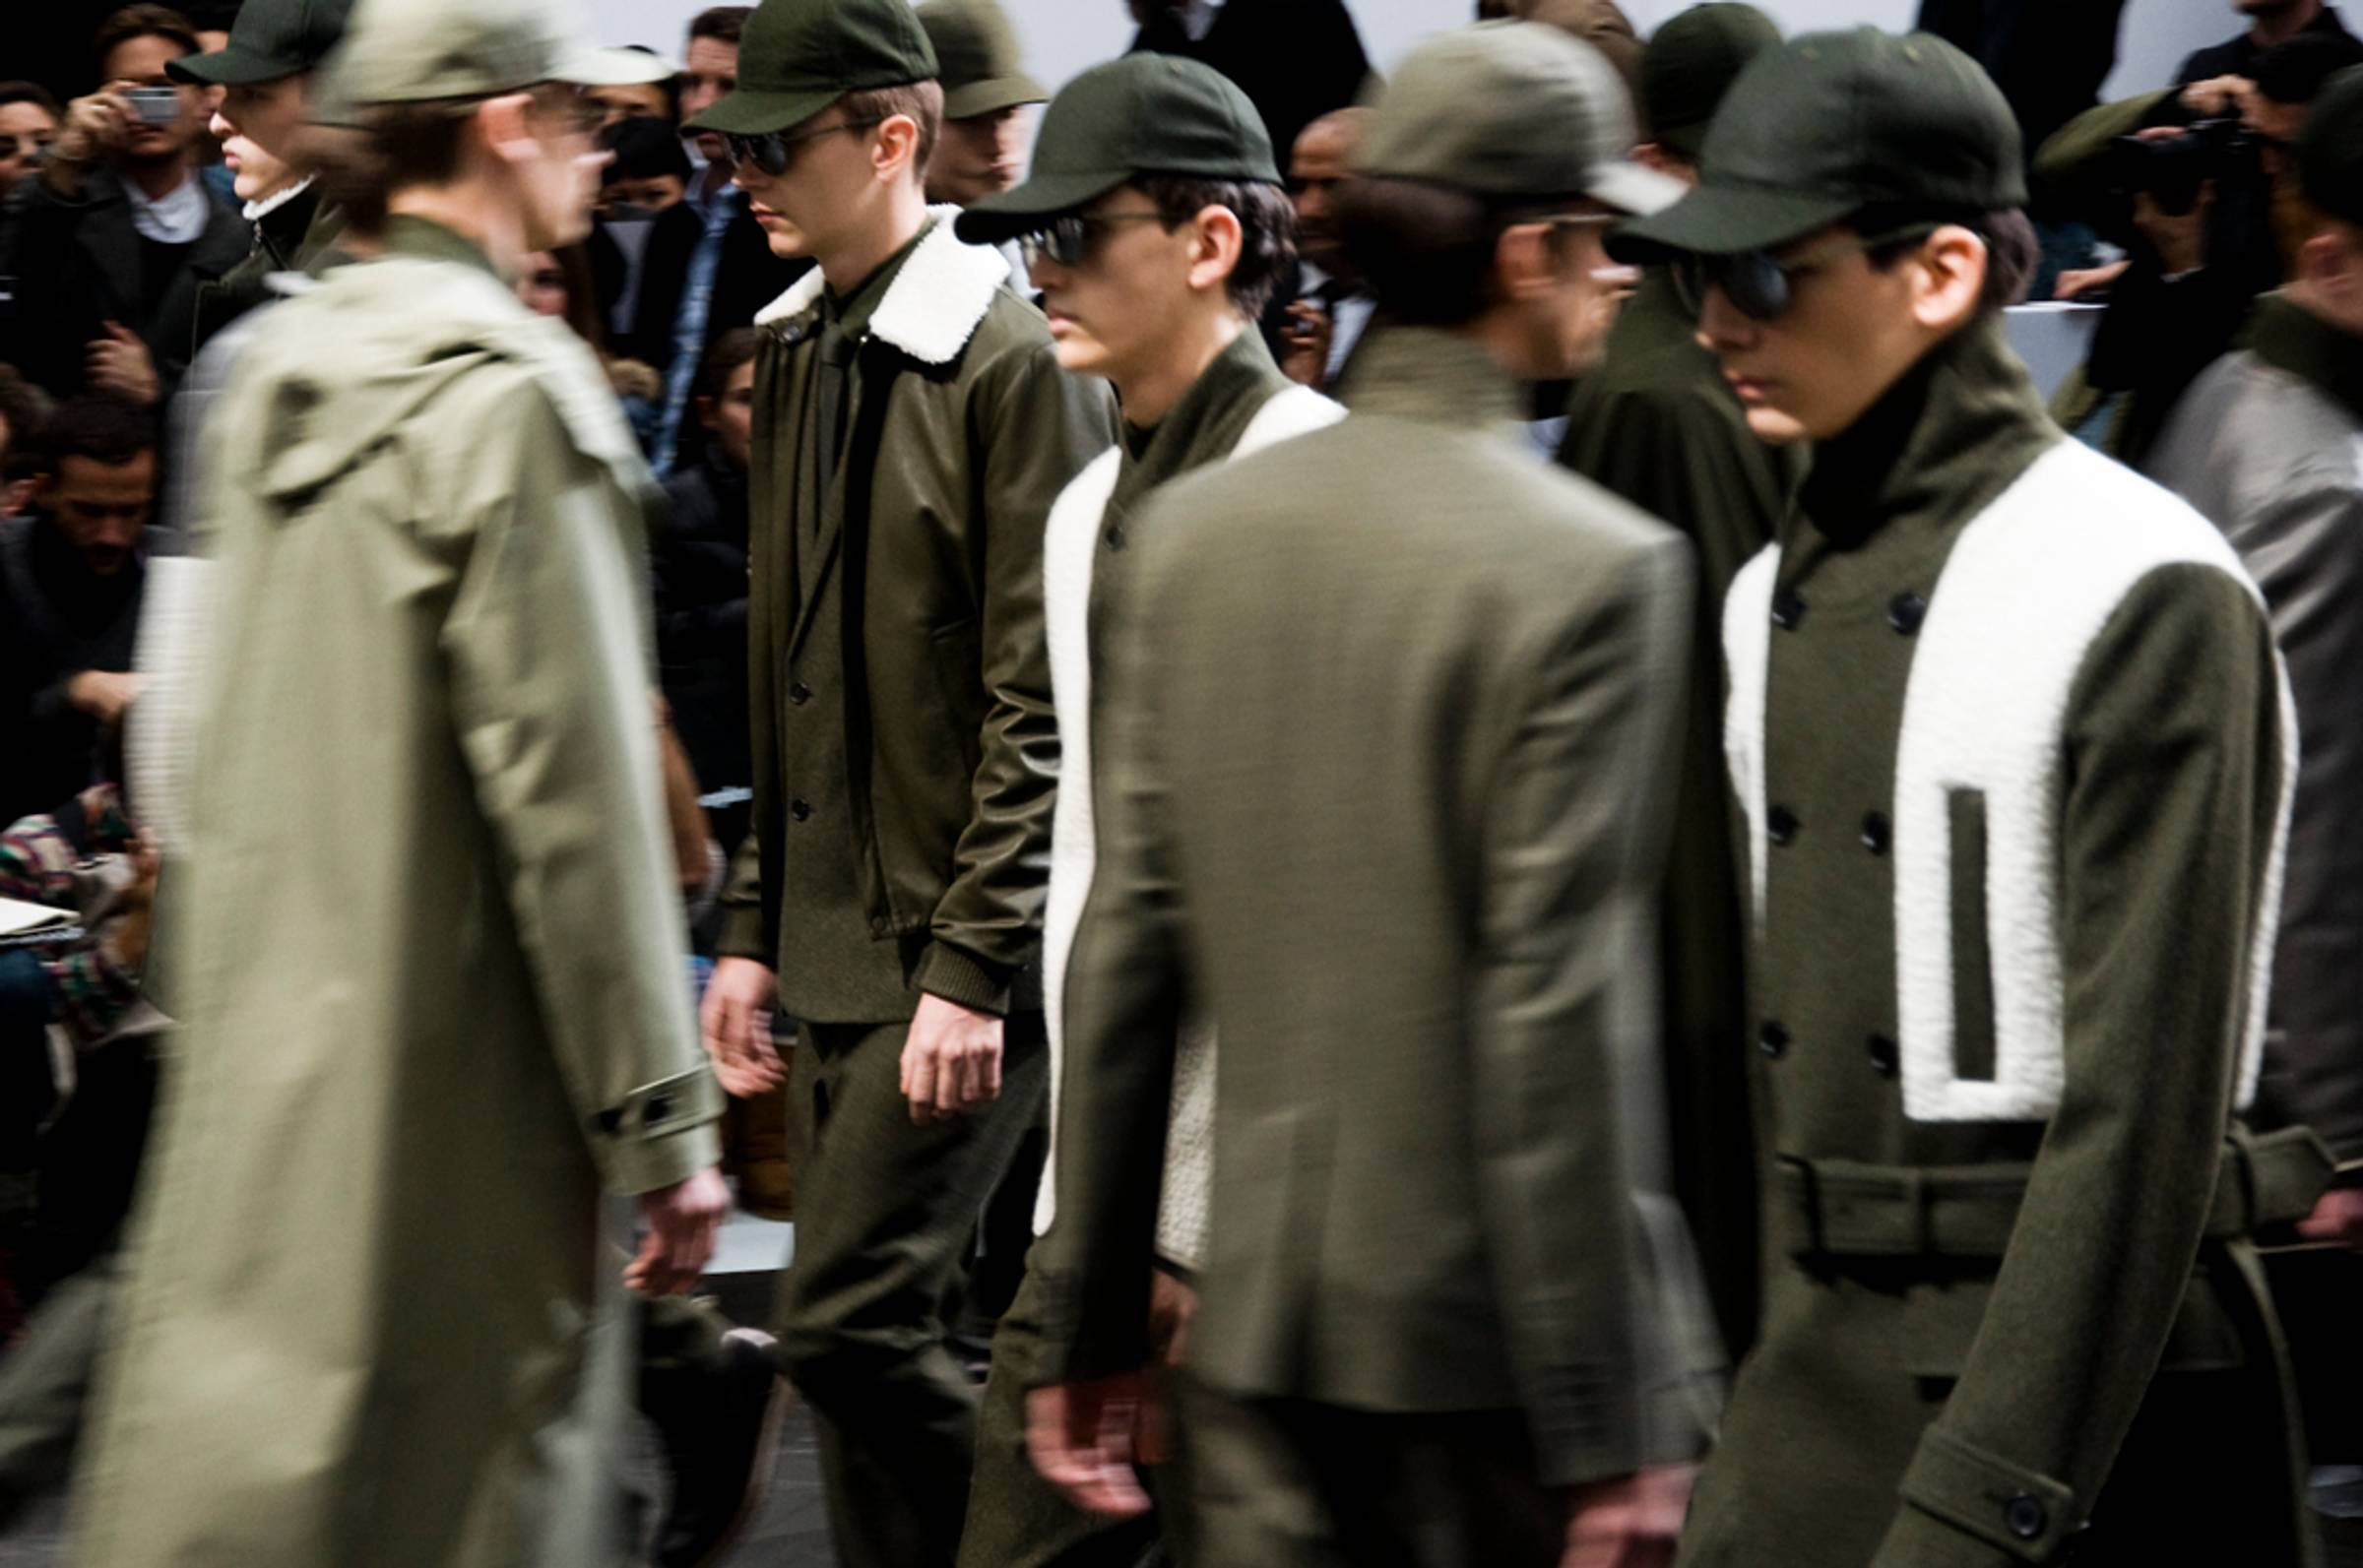 Military Style: Enlist Today